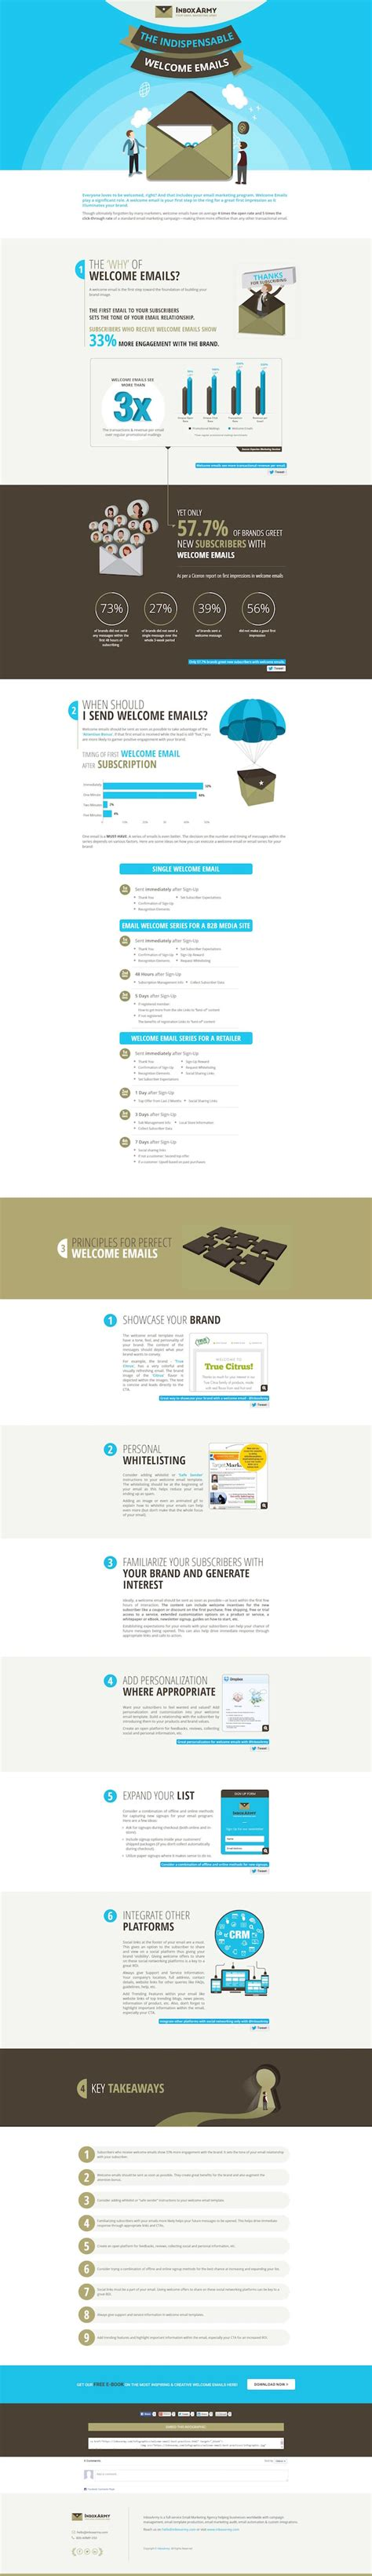 Infographic The Indispensable Welcome Emails Infographic Email Template